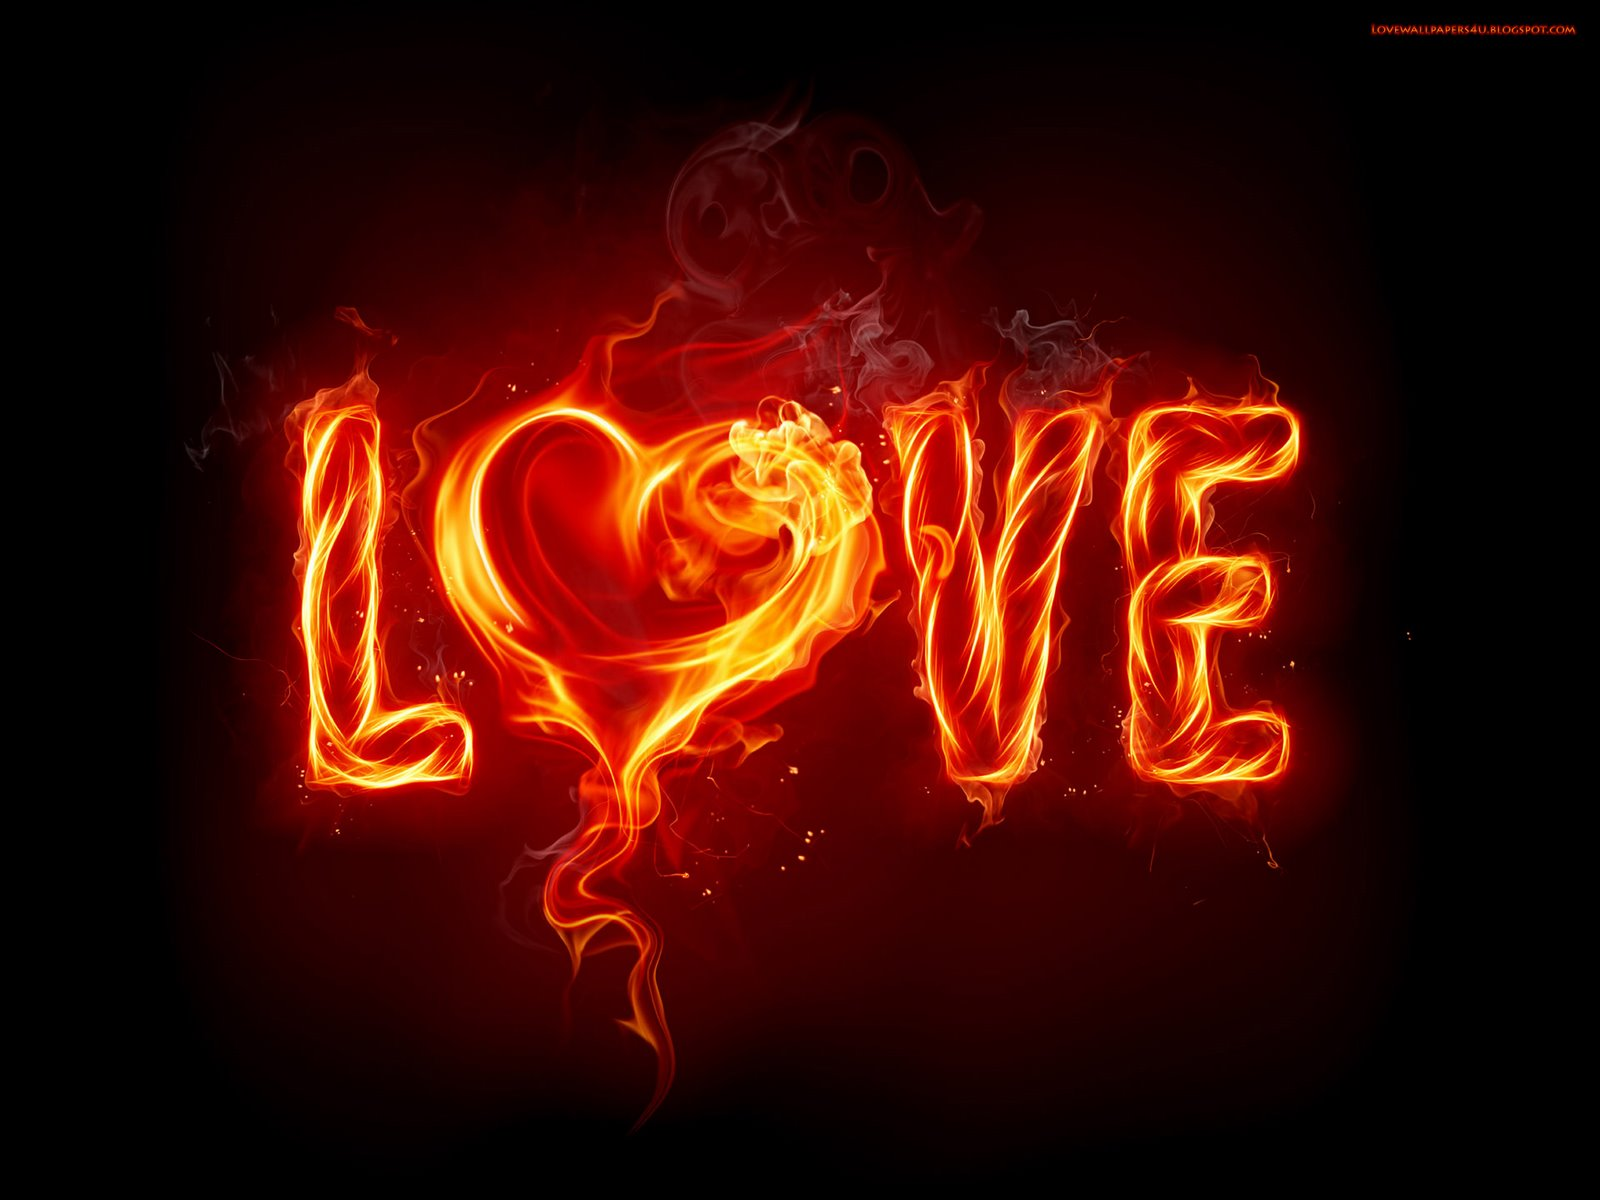 Love Wallpapers Awesome : amazing love wallpapers Amazing Wallpapers